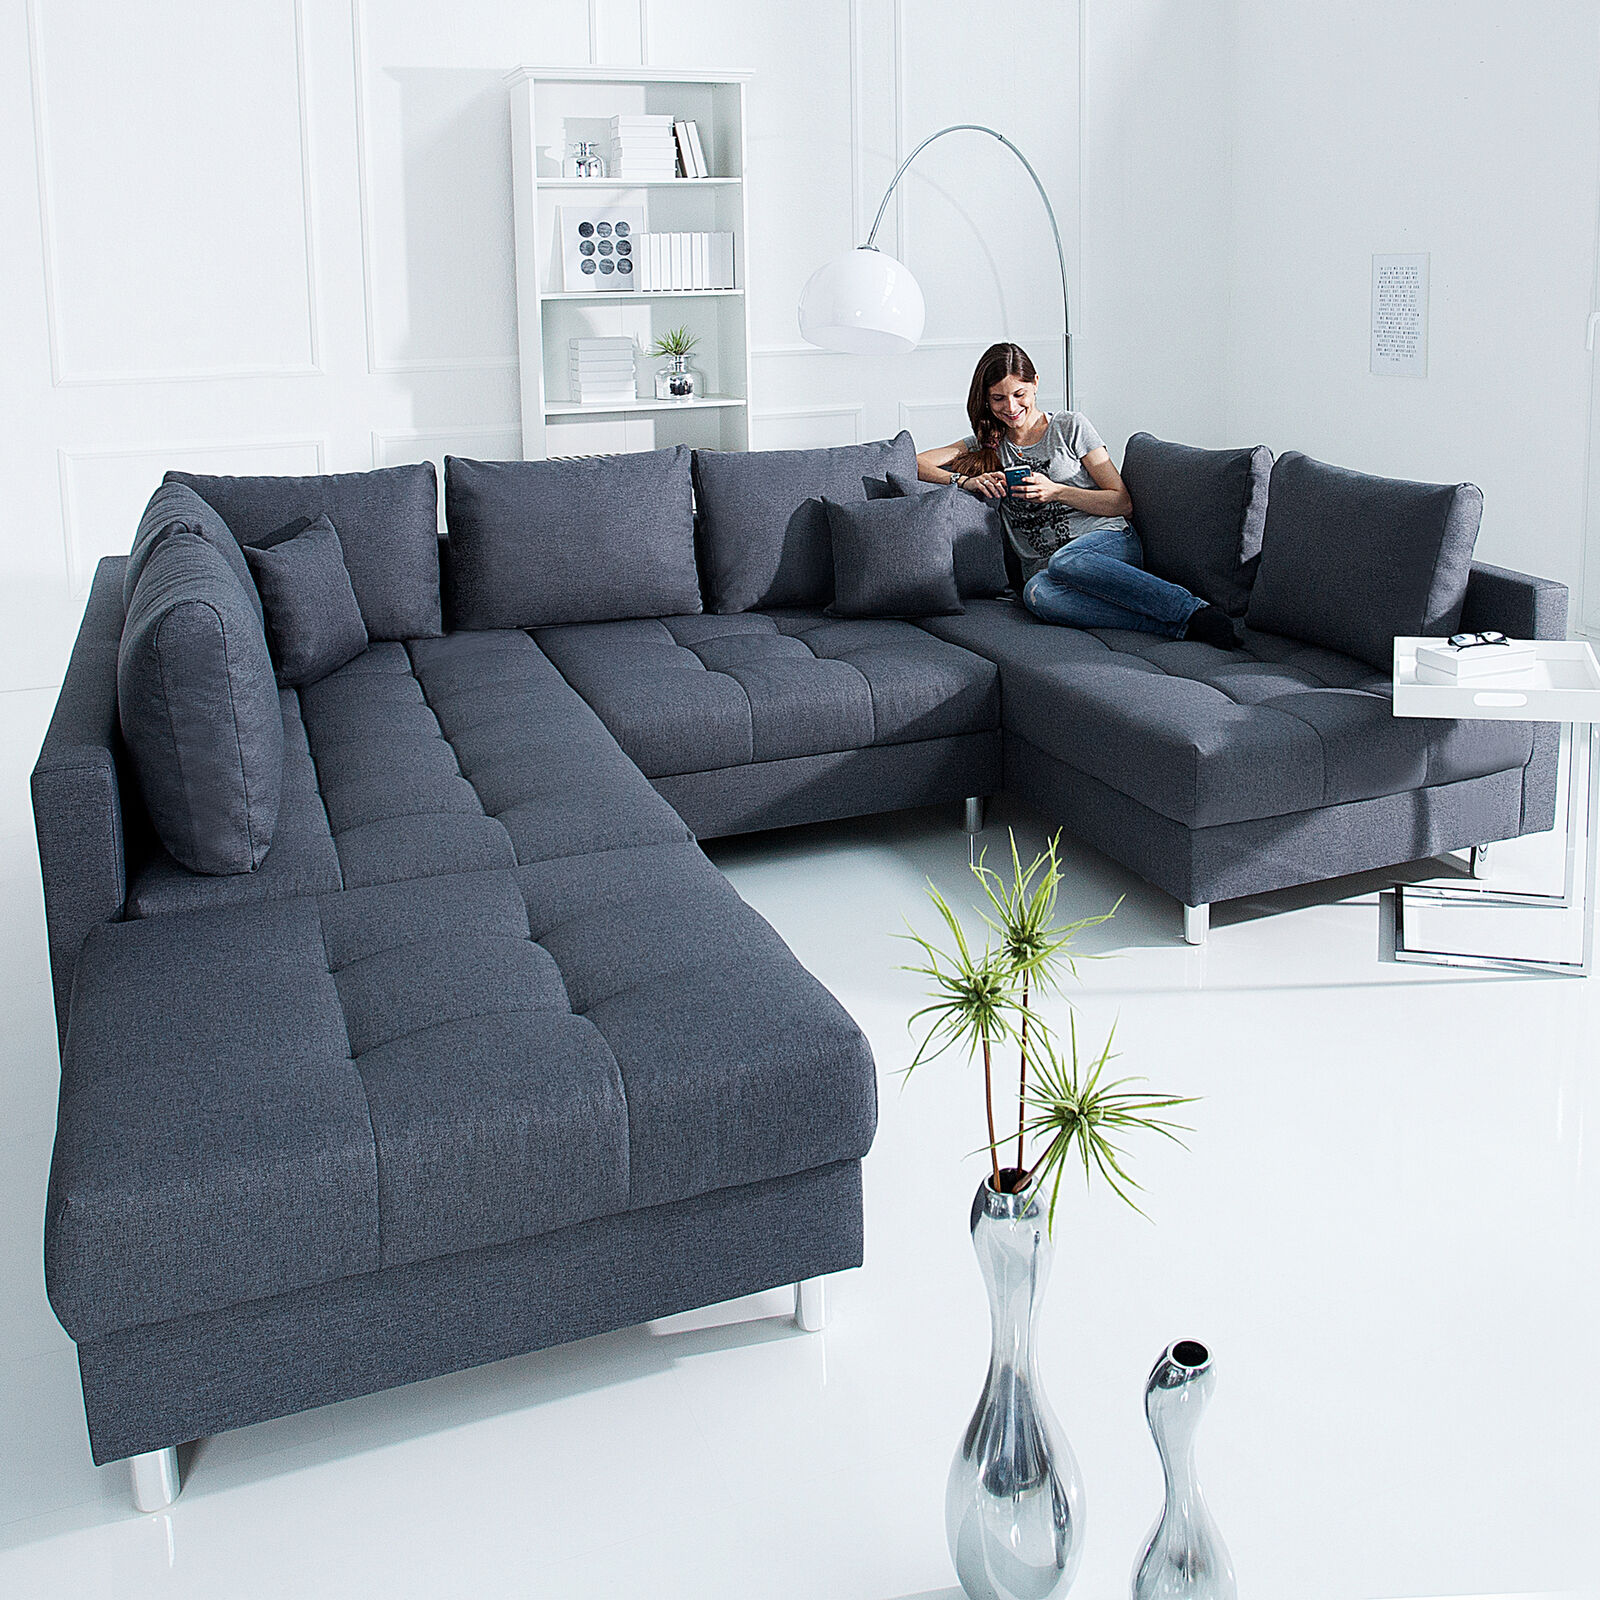 xxl wohnlandschaft kent 305cm anthrazit inkl hocker couch sofa u sofa eur 699 95 picclick de. Black Bedroom Furniture Sets. Home Design Ideas